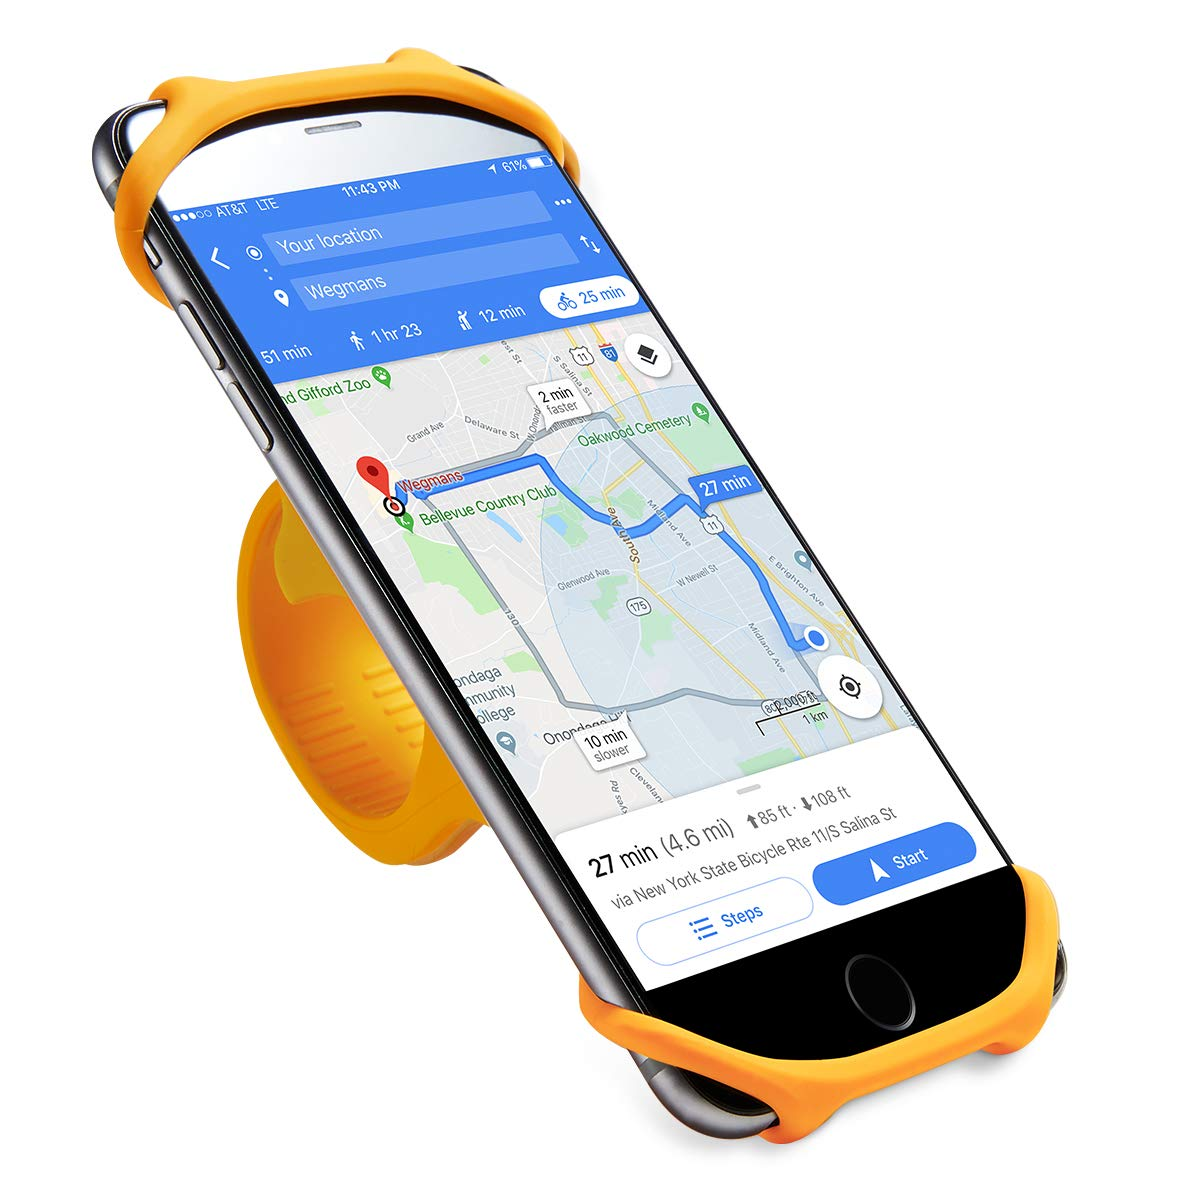 Size L, 5.2 to 6.5 inches Cyclepartner Universal Bike Phone Mount Cellphone Silicone Holder for Bicycle and Motorcycle Handlebars Fits for iPhone XS//X//8//8Plus//7//7Plus//6 Samsung Galaxy S9//S8//S7